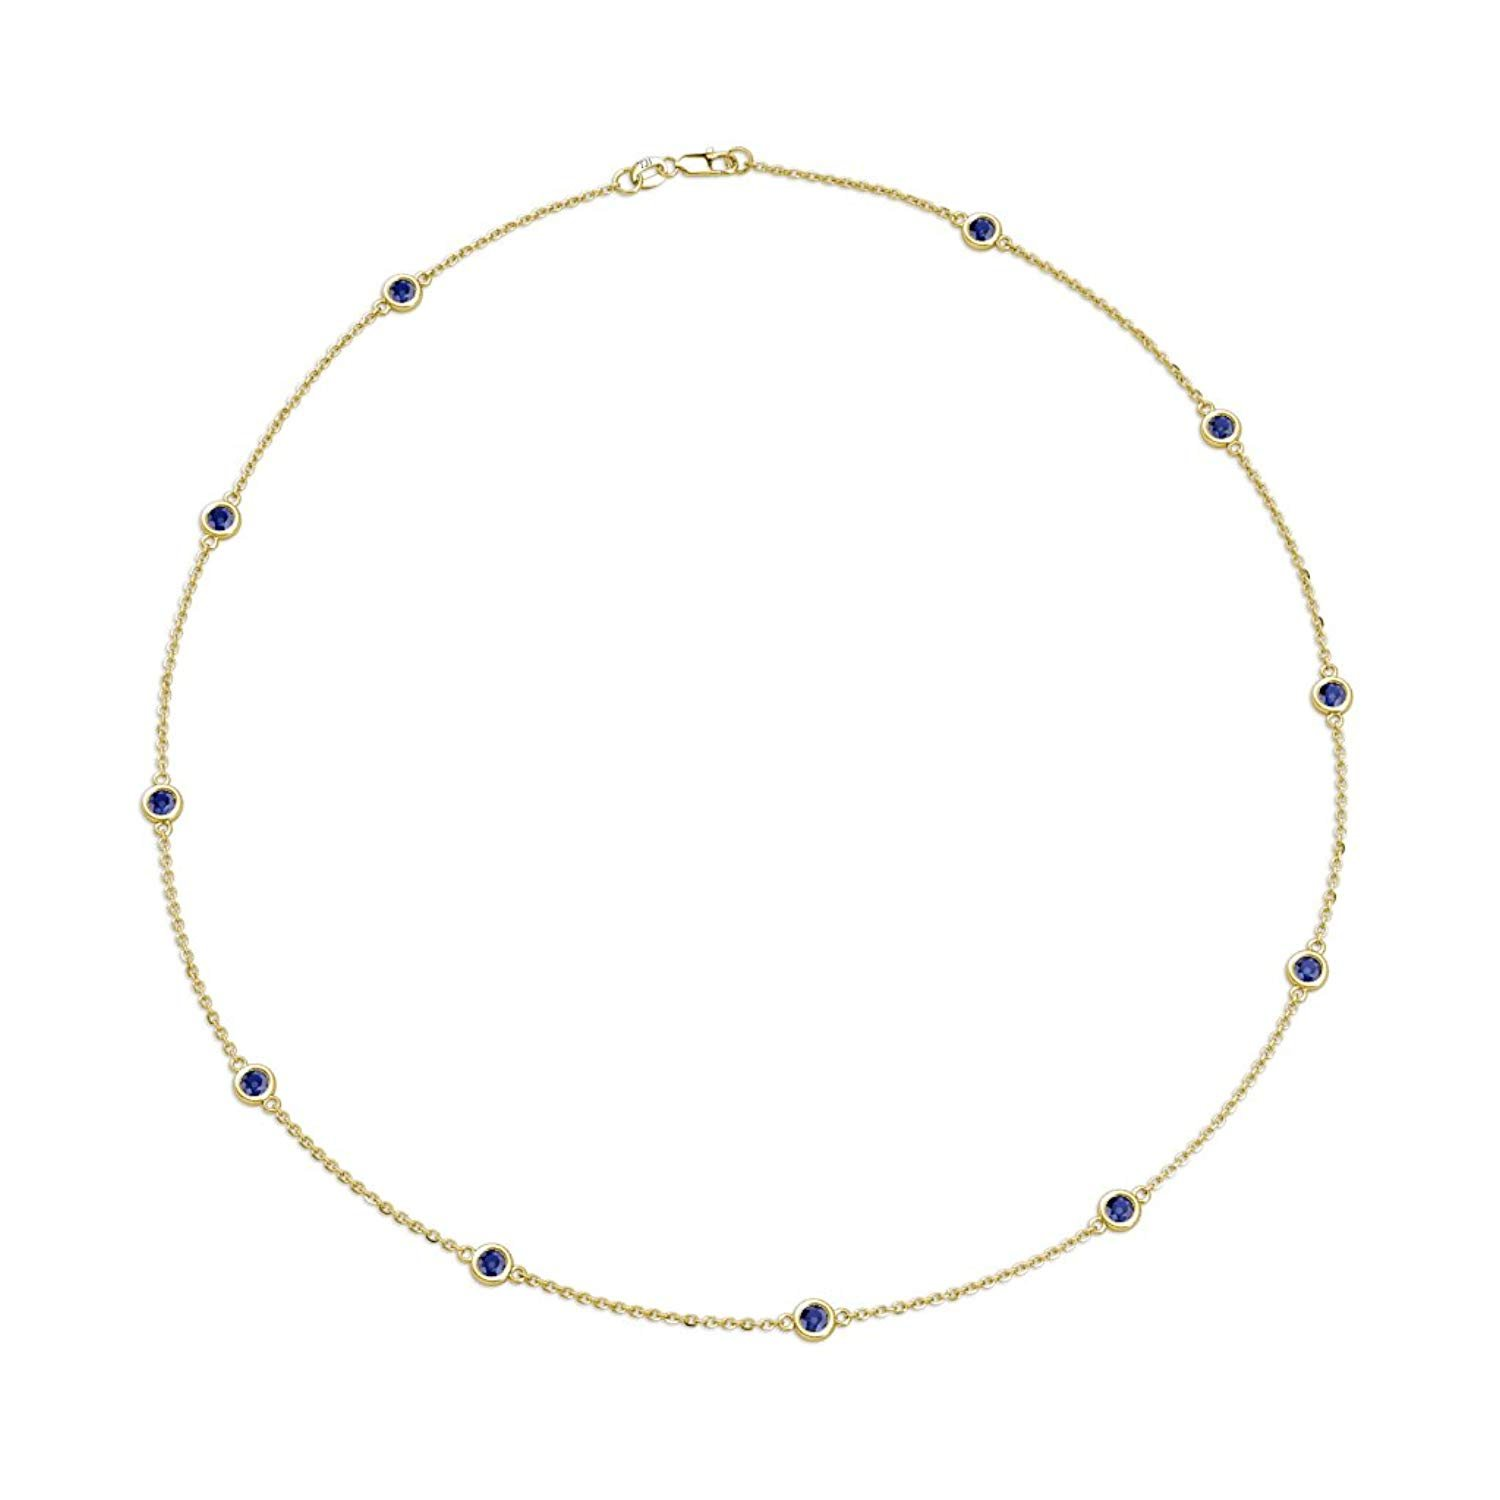 11 Station Blue Sapphire on Cable Necklace 0.80 Carat tw in 14K Yellow Gold.18 Inches in Length by TriJewels